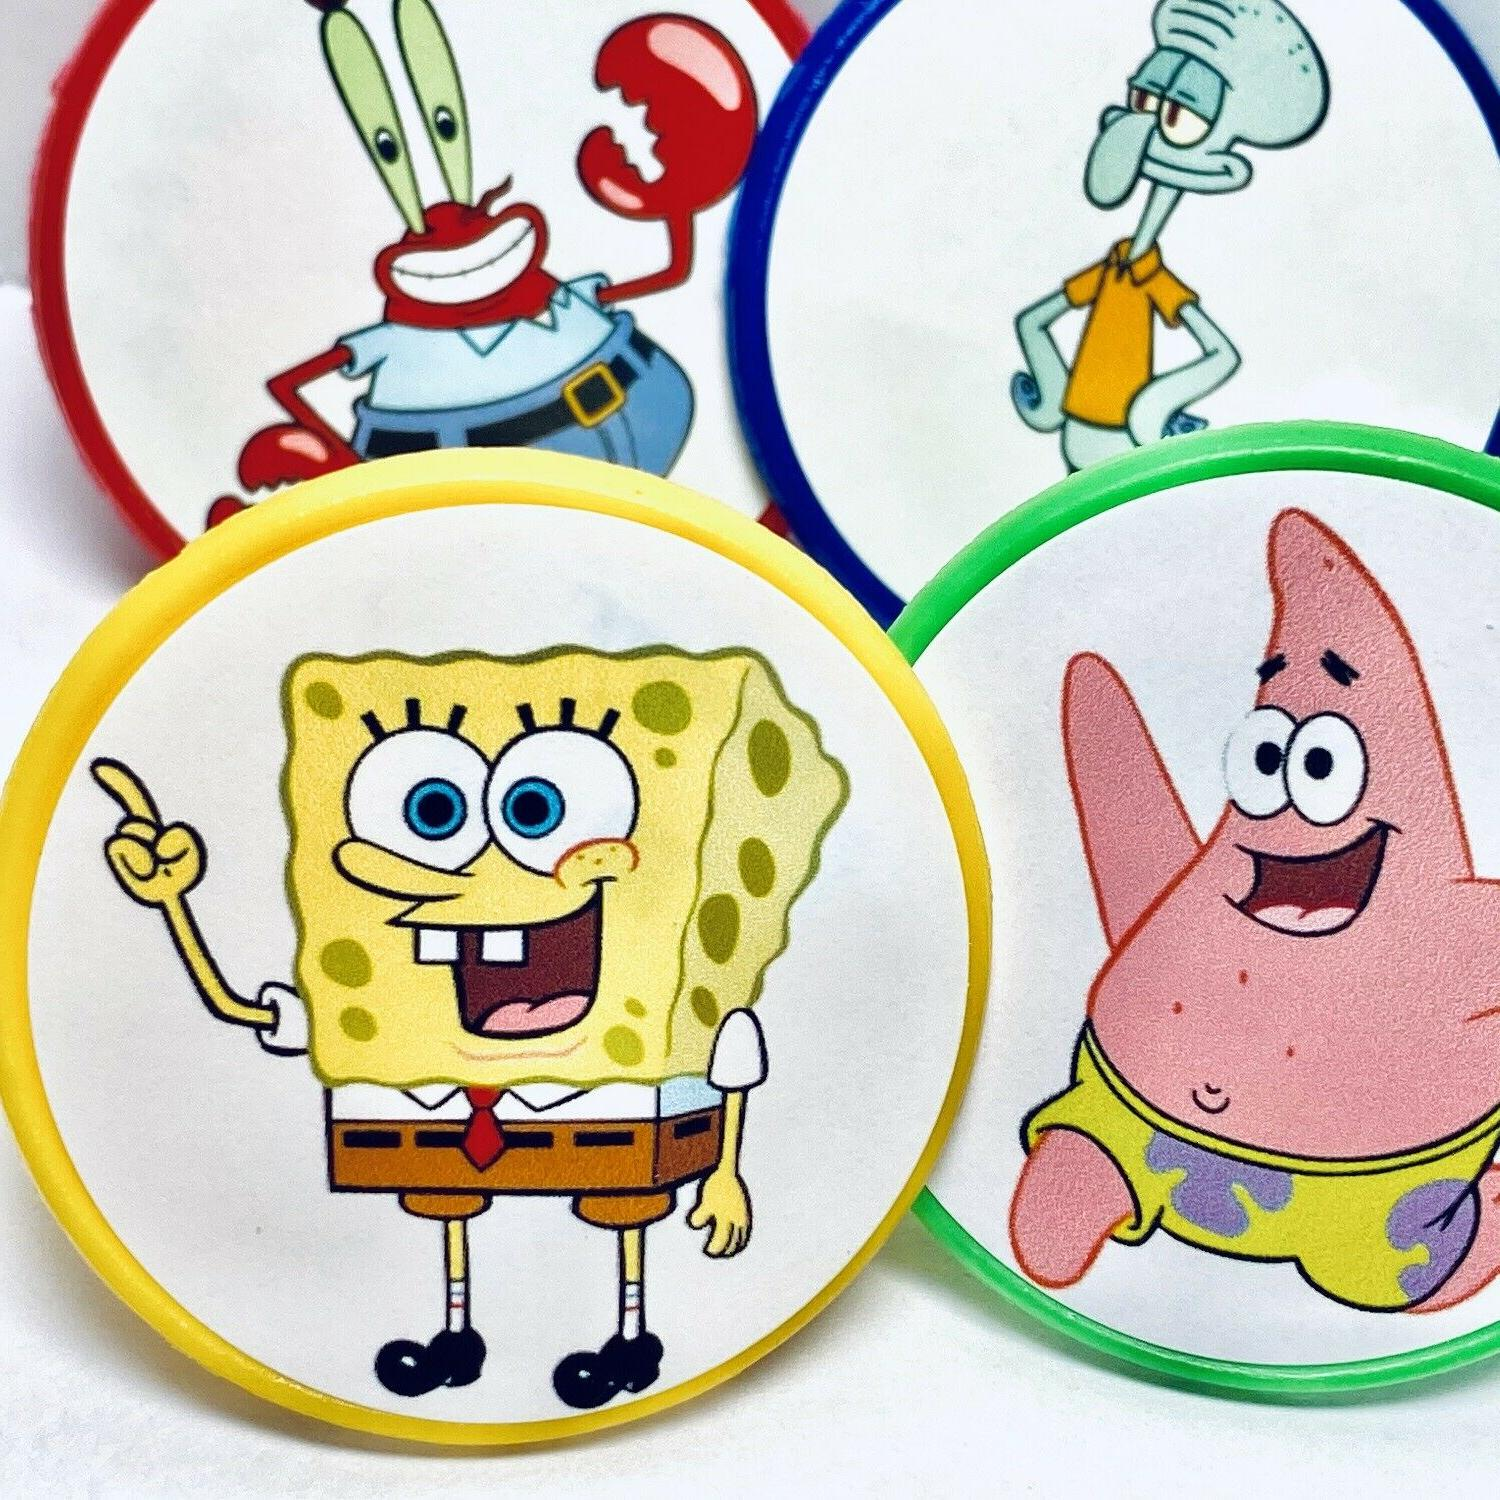 spongebob squarepants cupcake toppers party favors rings